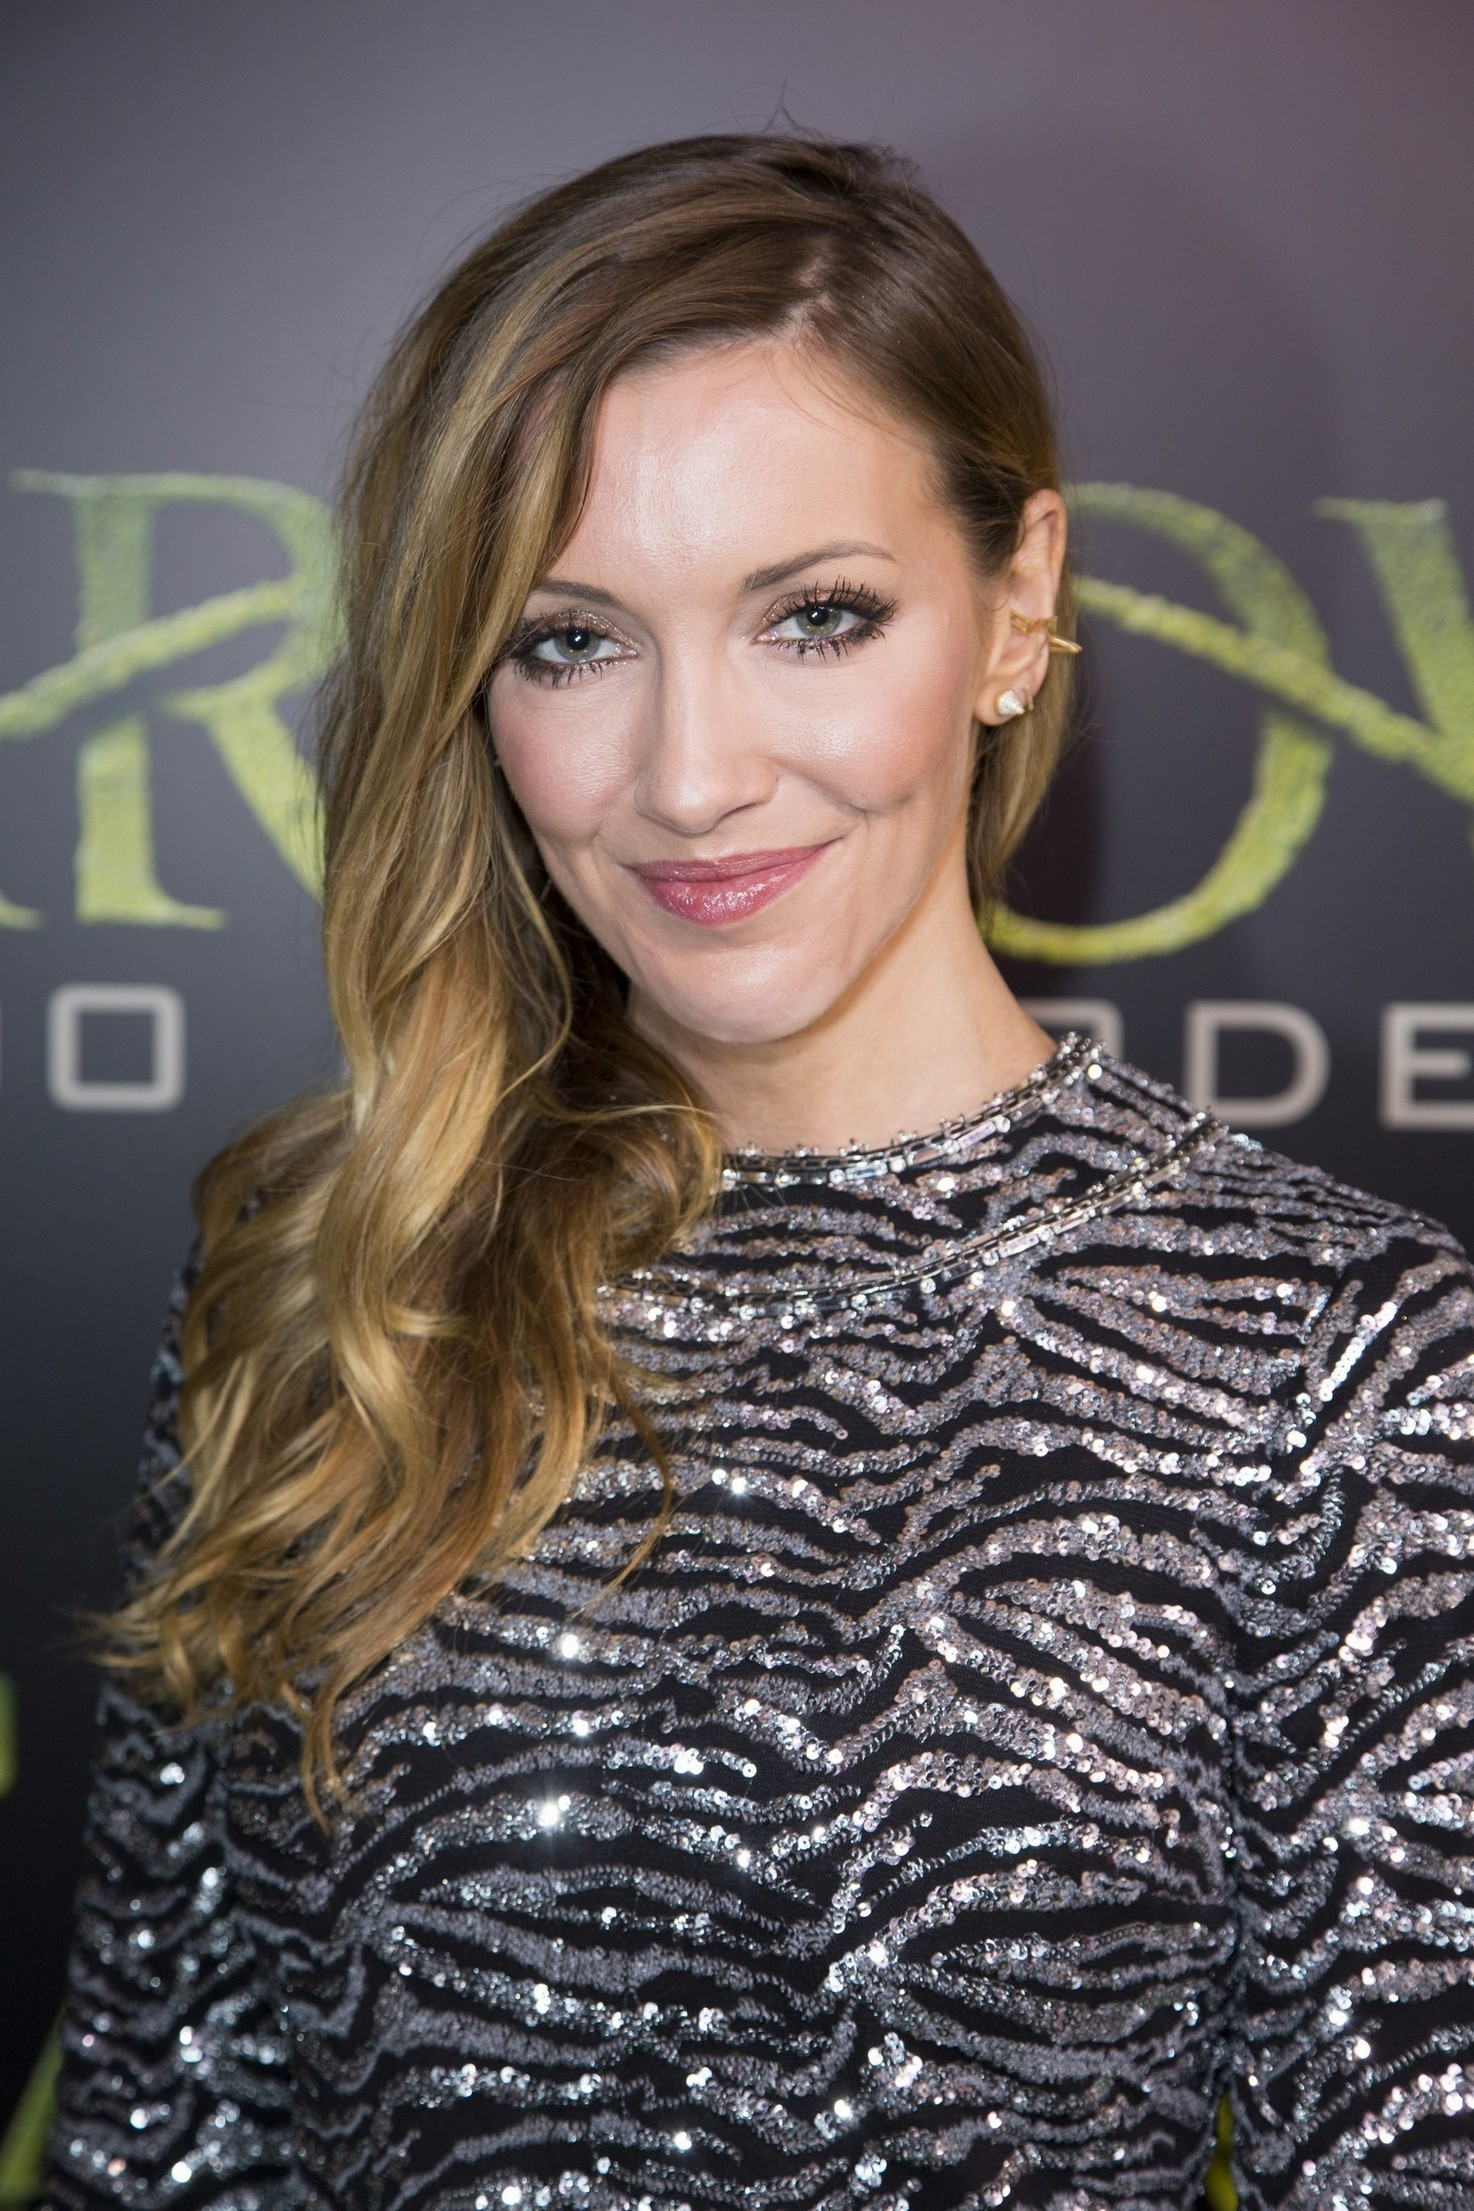 Katie Cassidy Photos nudes (74 photo), Fappening Celebrity fotos